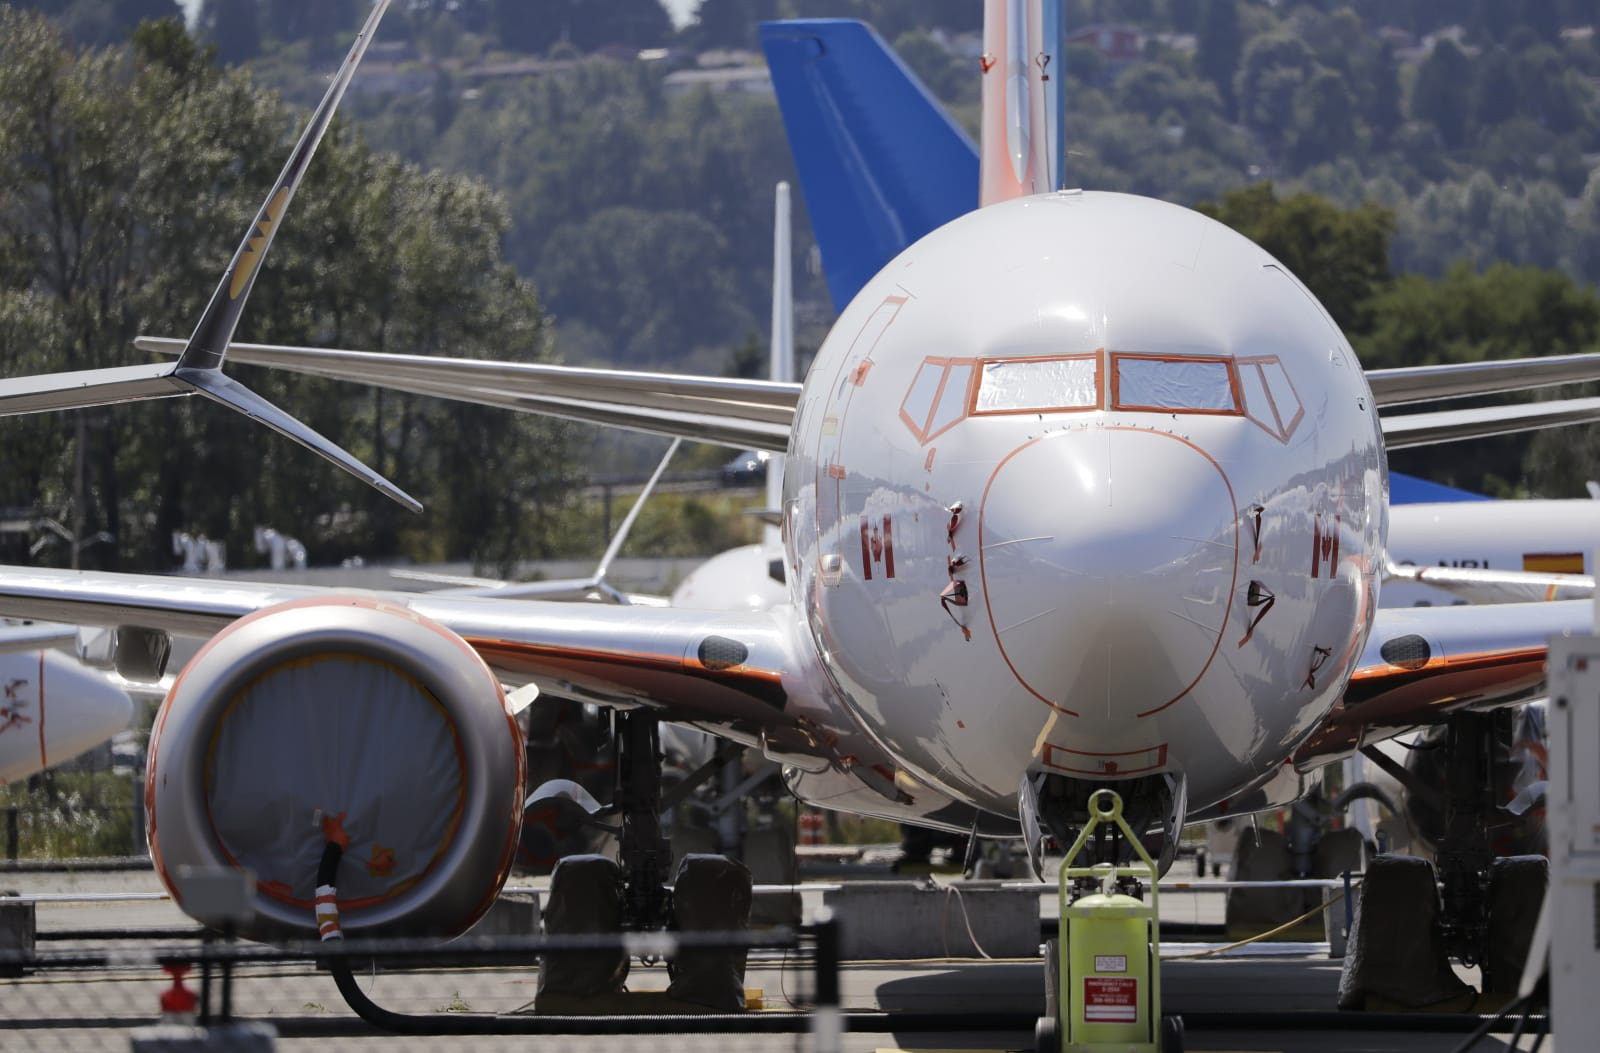 Boeing messages hint staff may have misled FAA about 737 Max